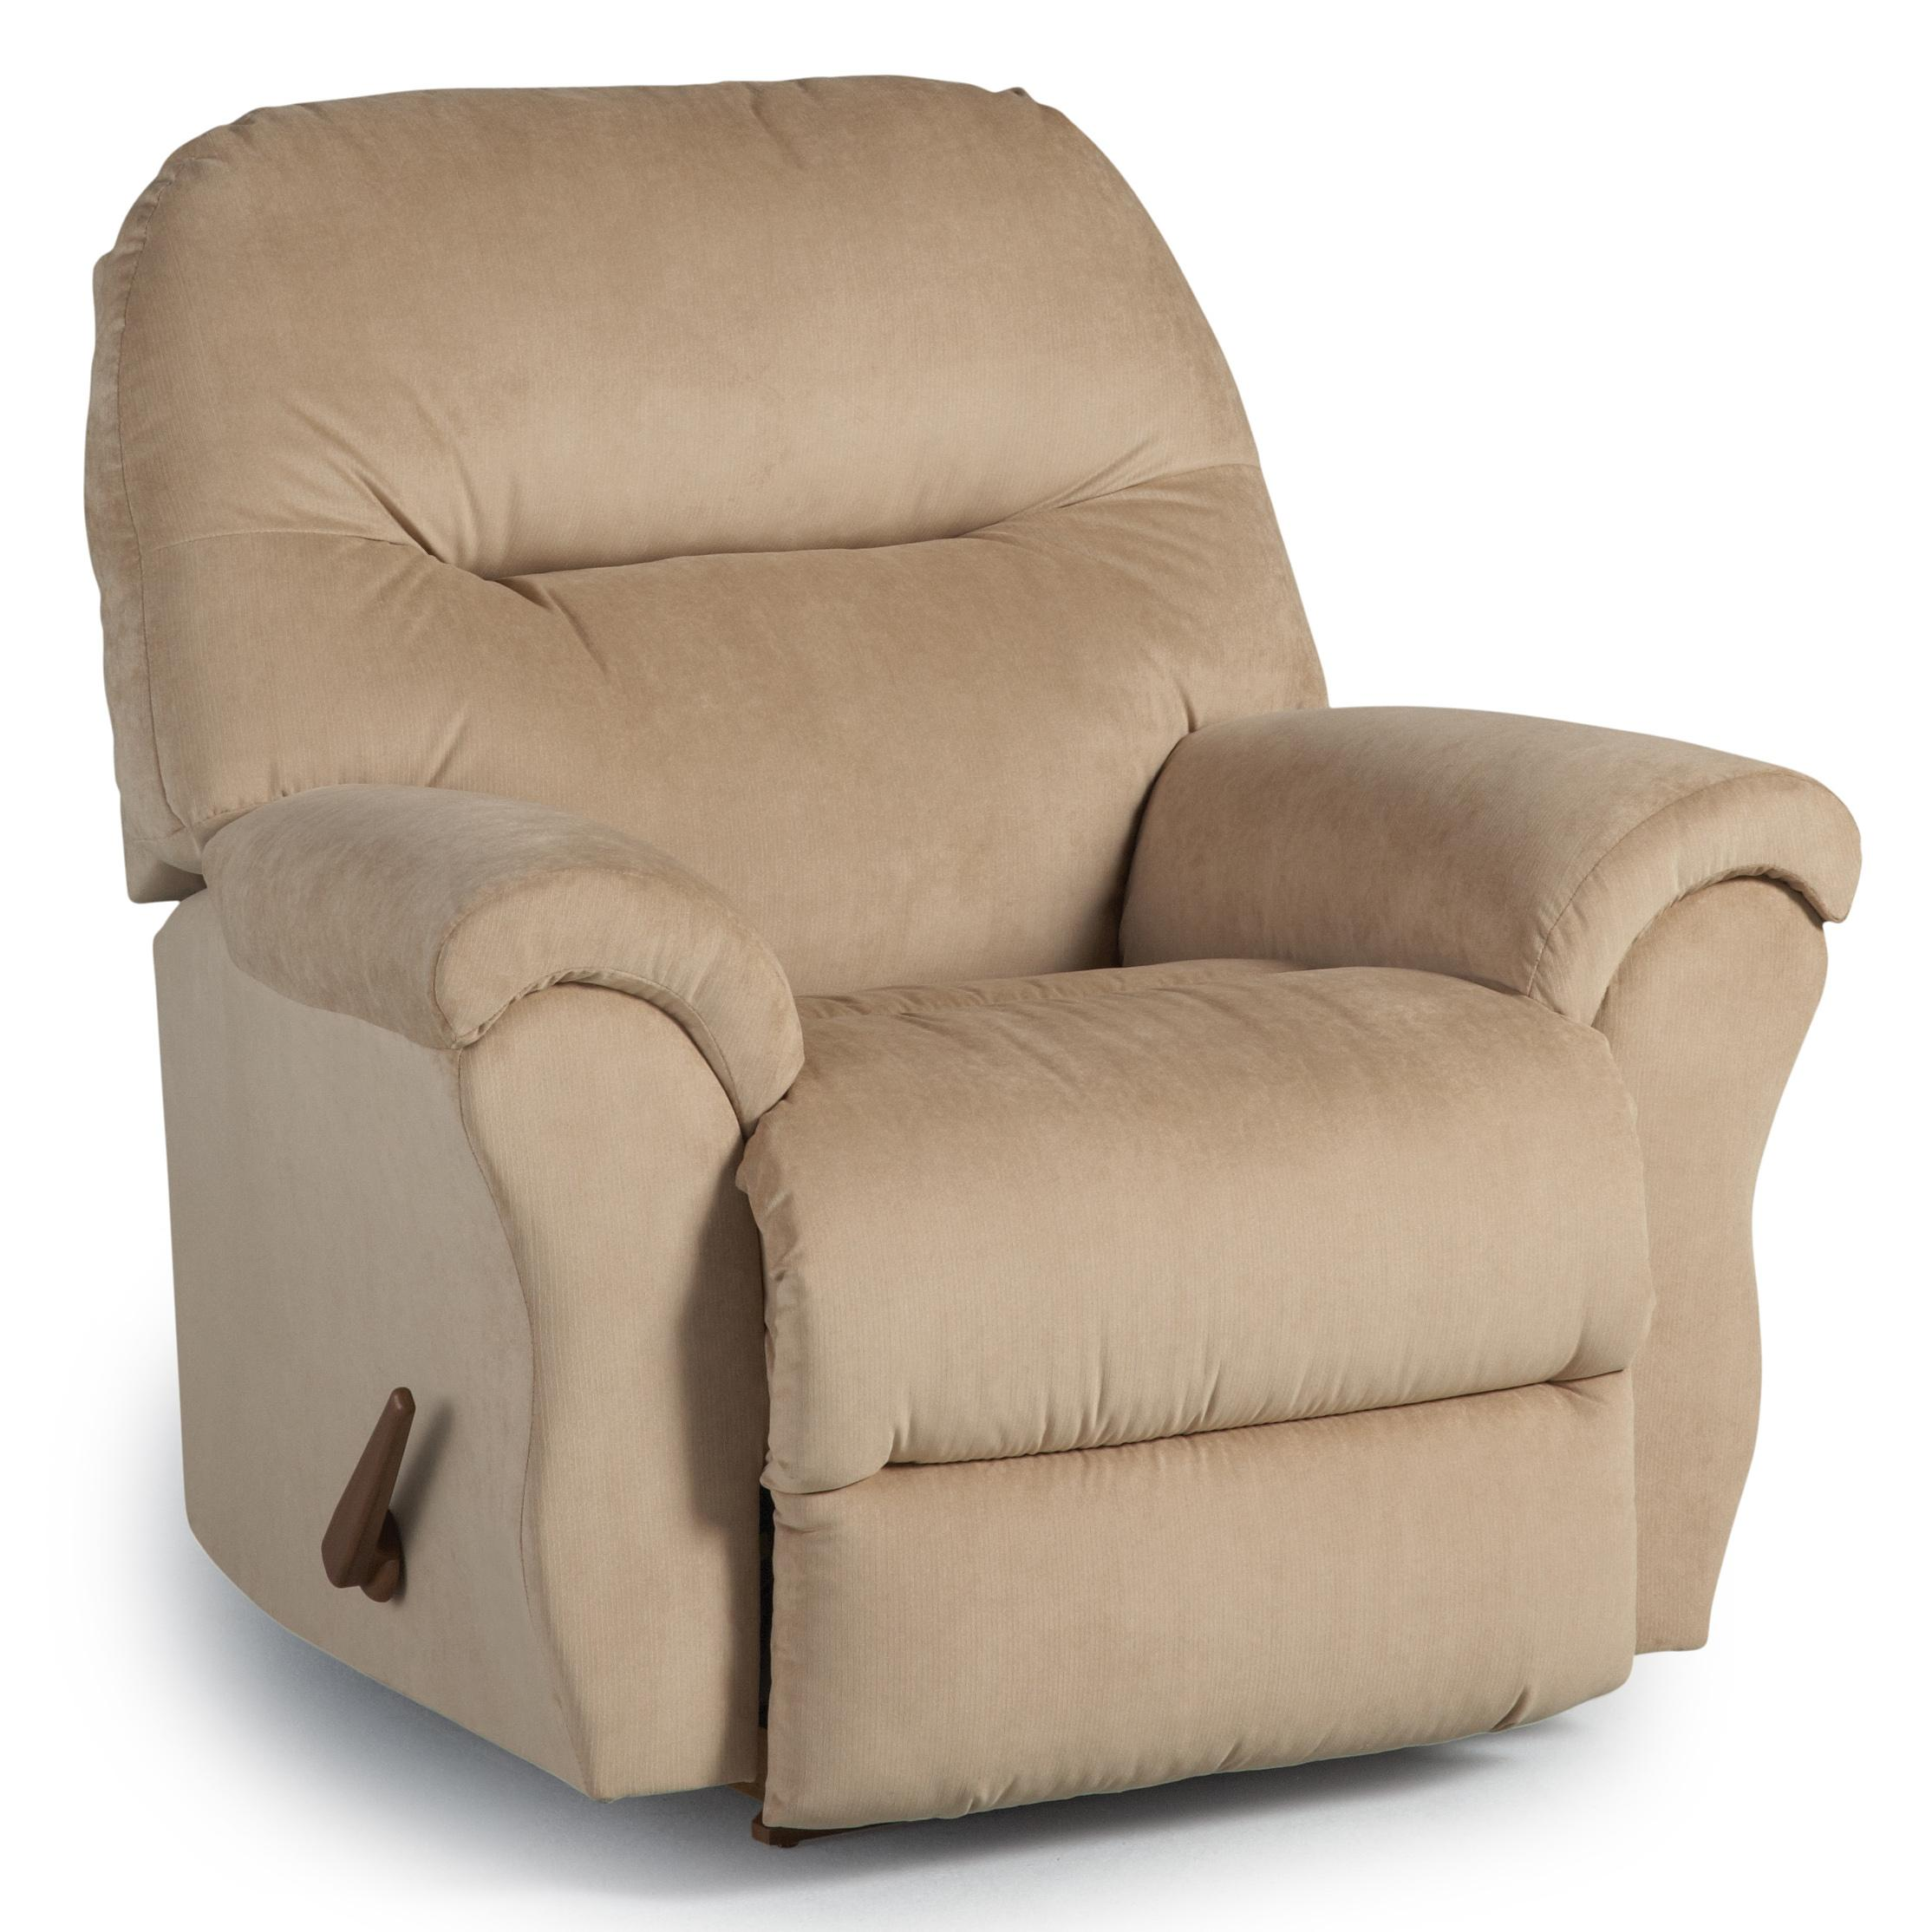 Double Wide Recliner Chair Double Wide Rocker Recliner Luxury Lane Alpine Loveseat